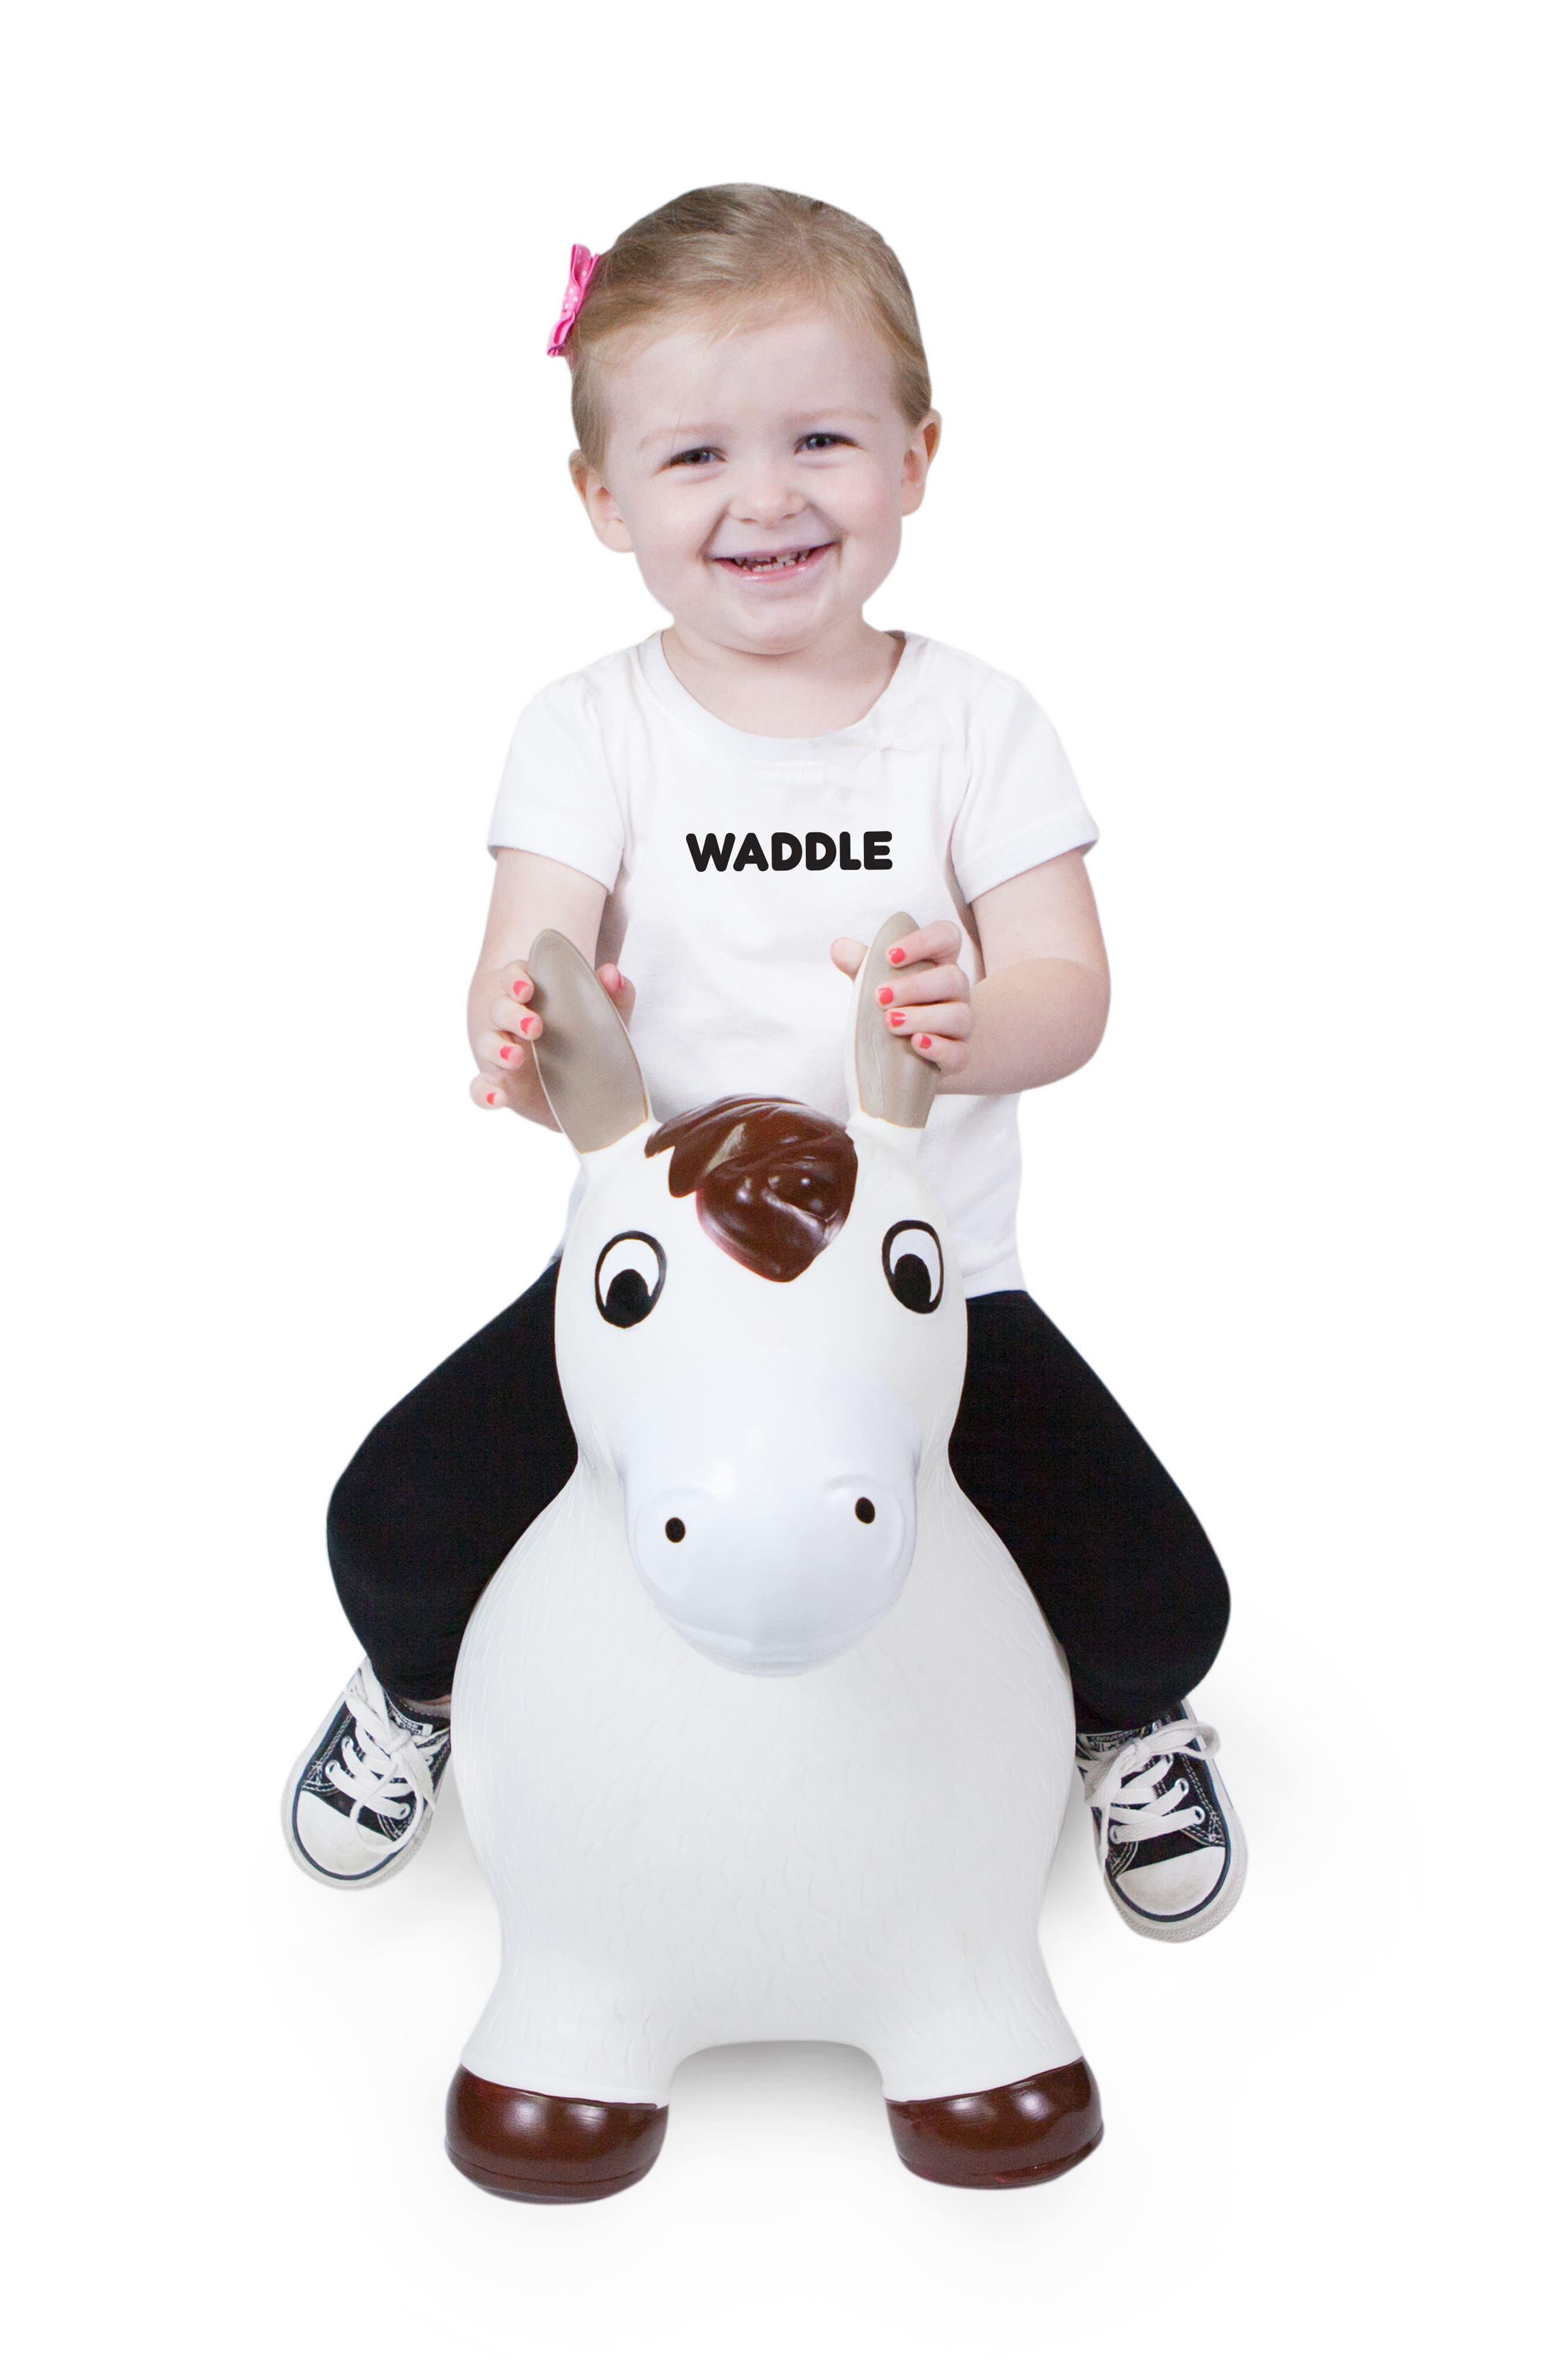 Lucky Bouncy Ride-On Horse Toy,                             Alternate thumbnail 3, color,                             WHITE/ BROWN